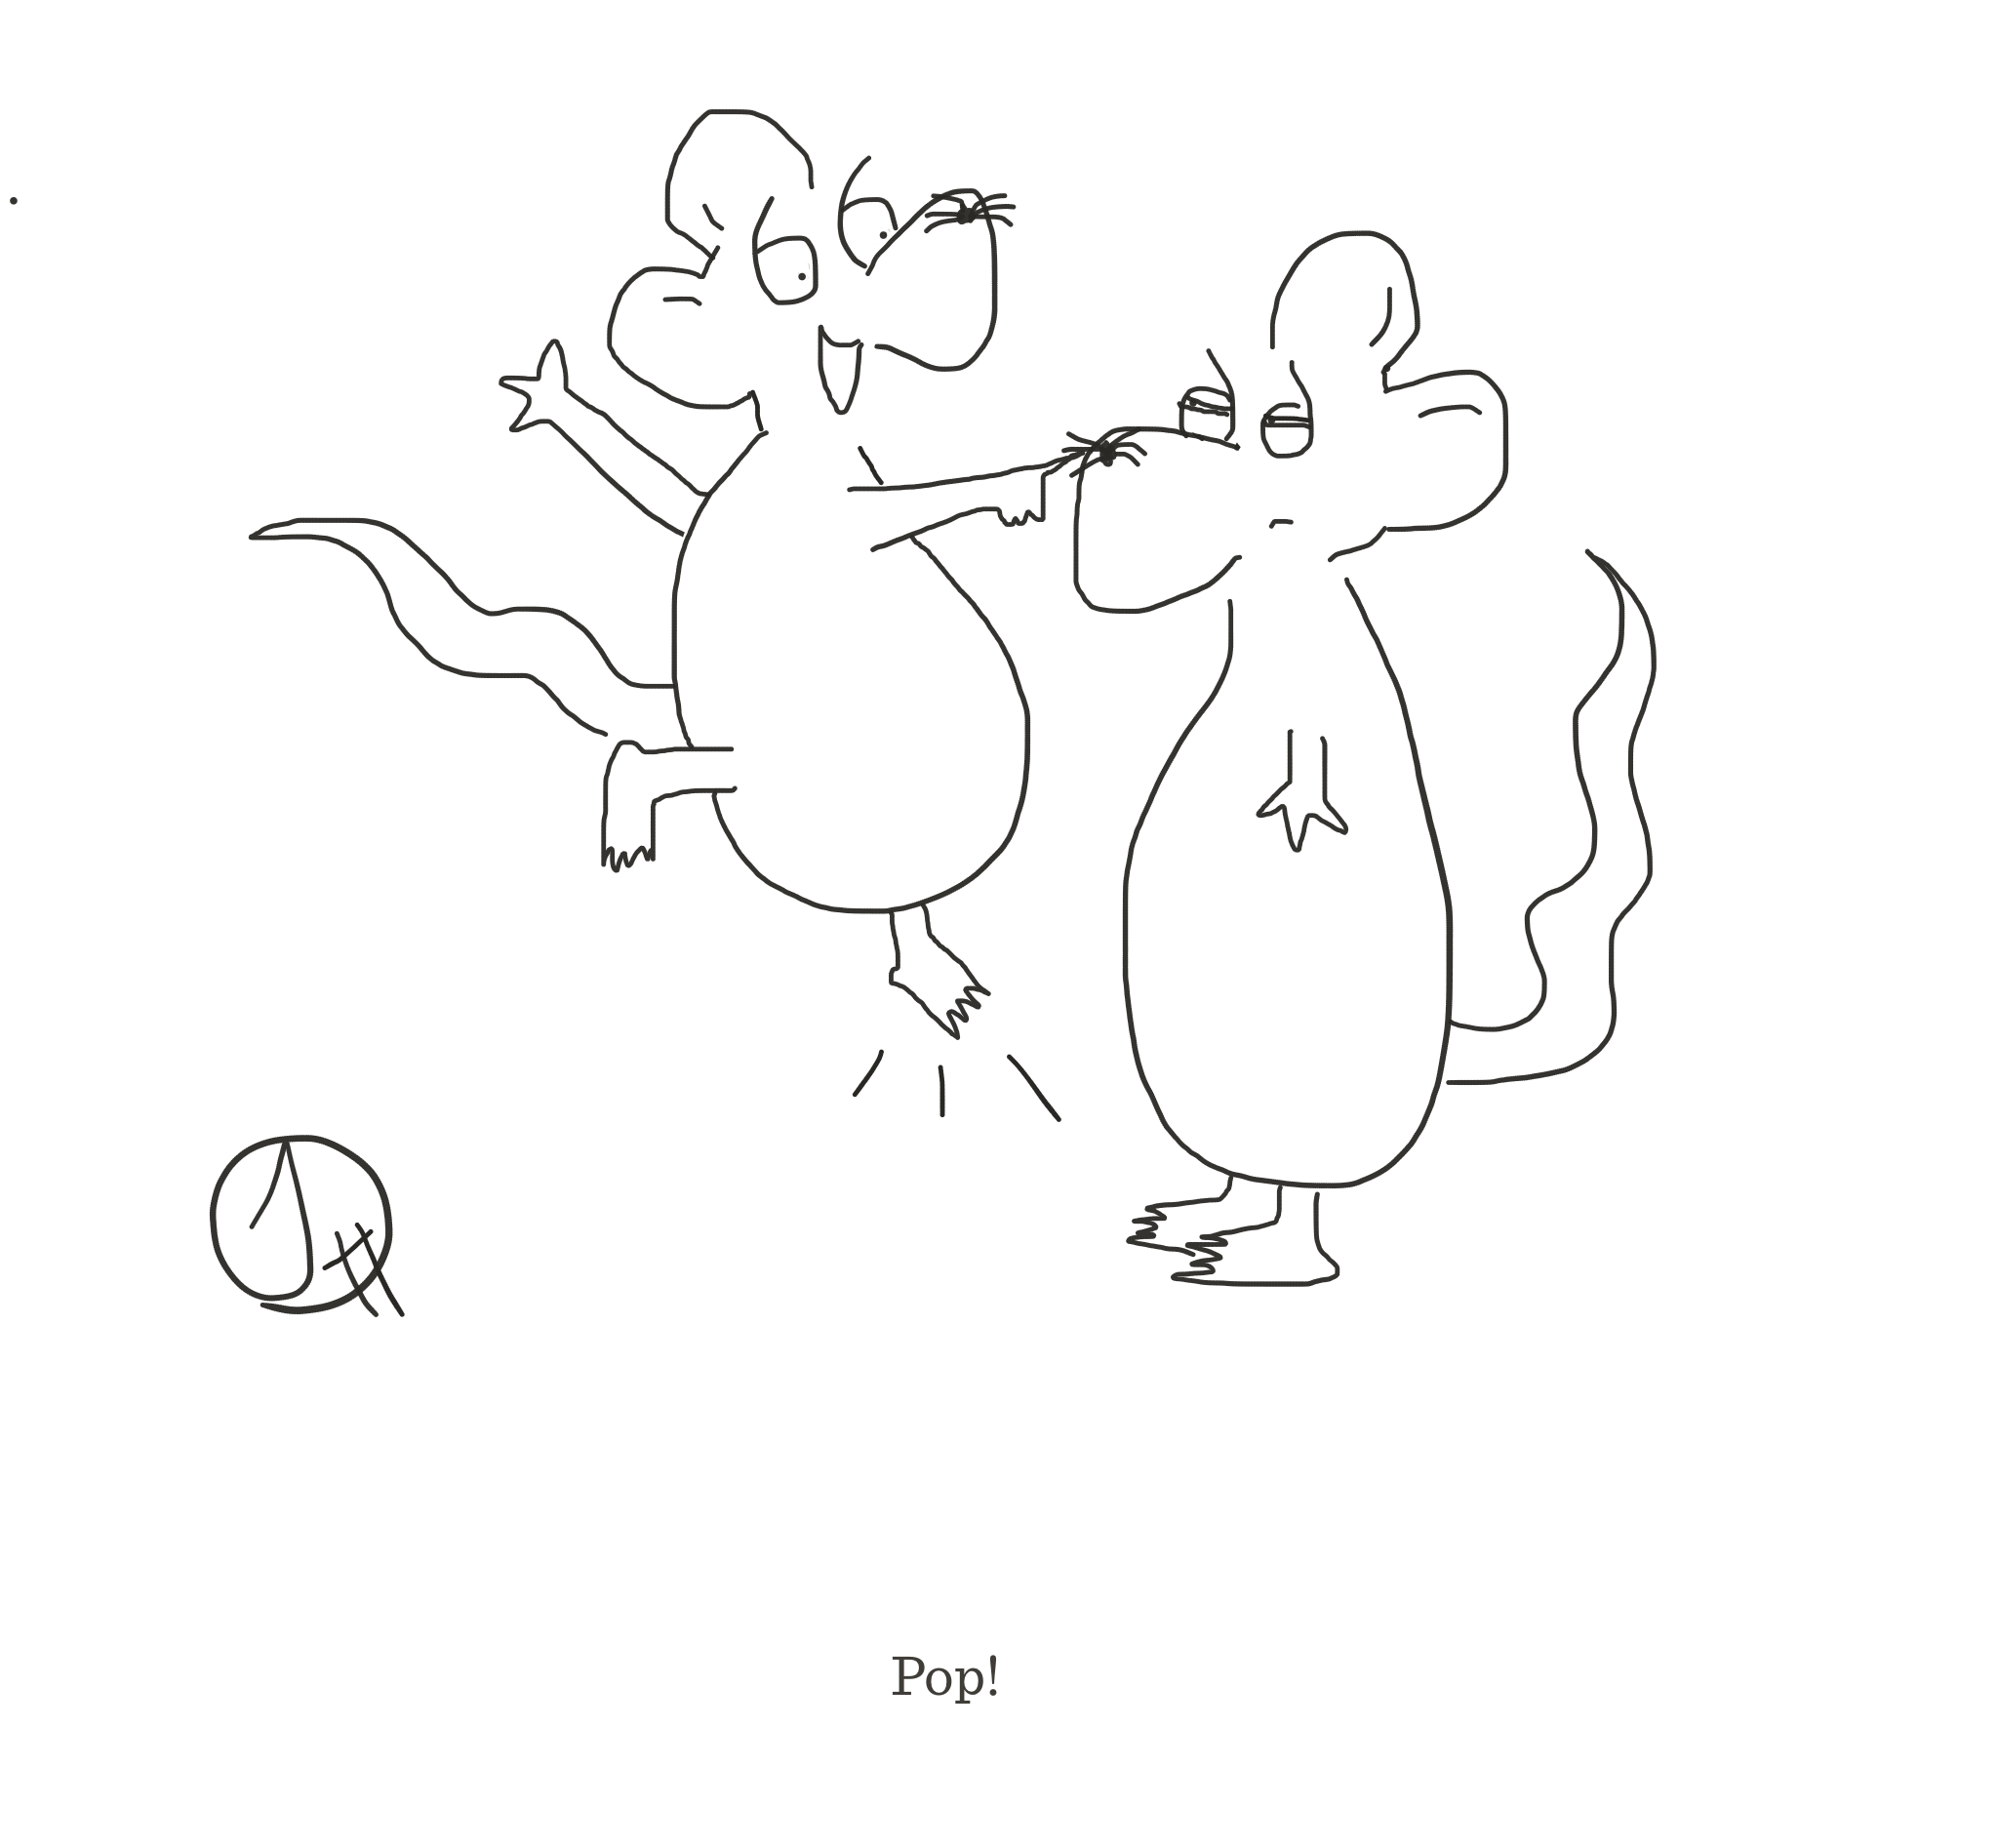 Pop!, The Happy Rat cartoon